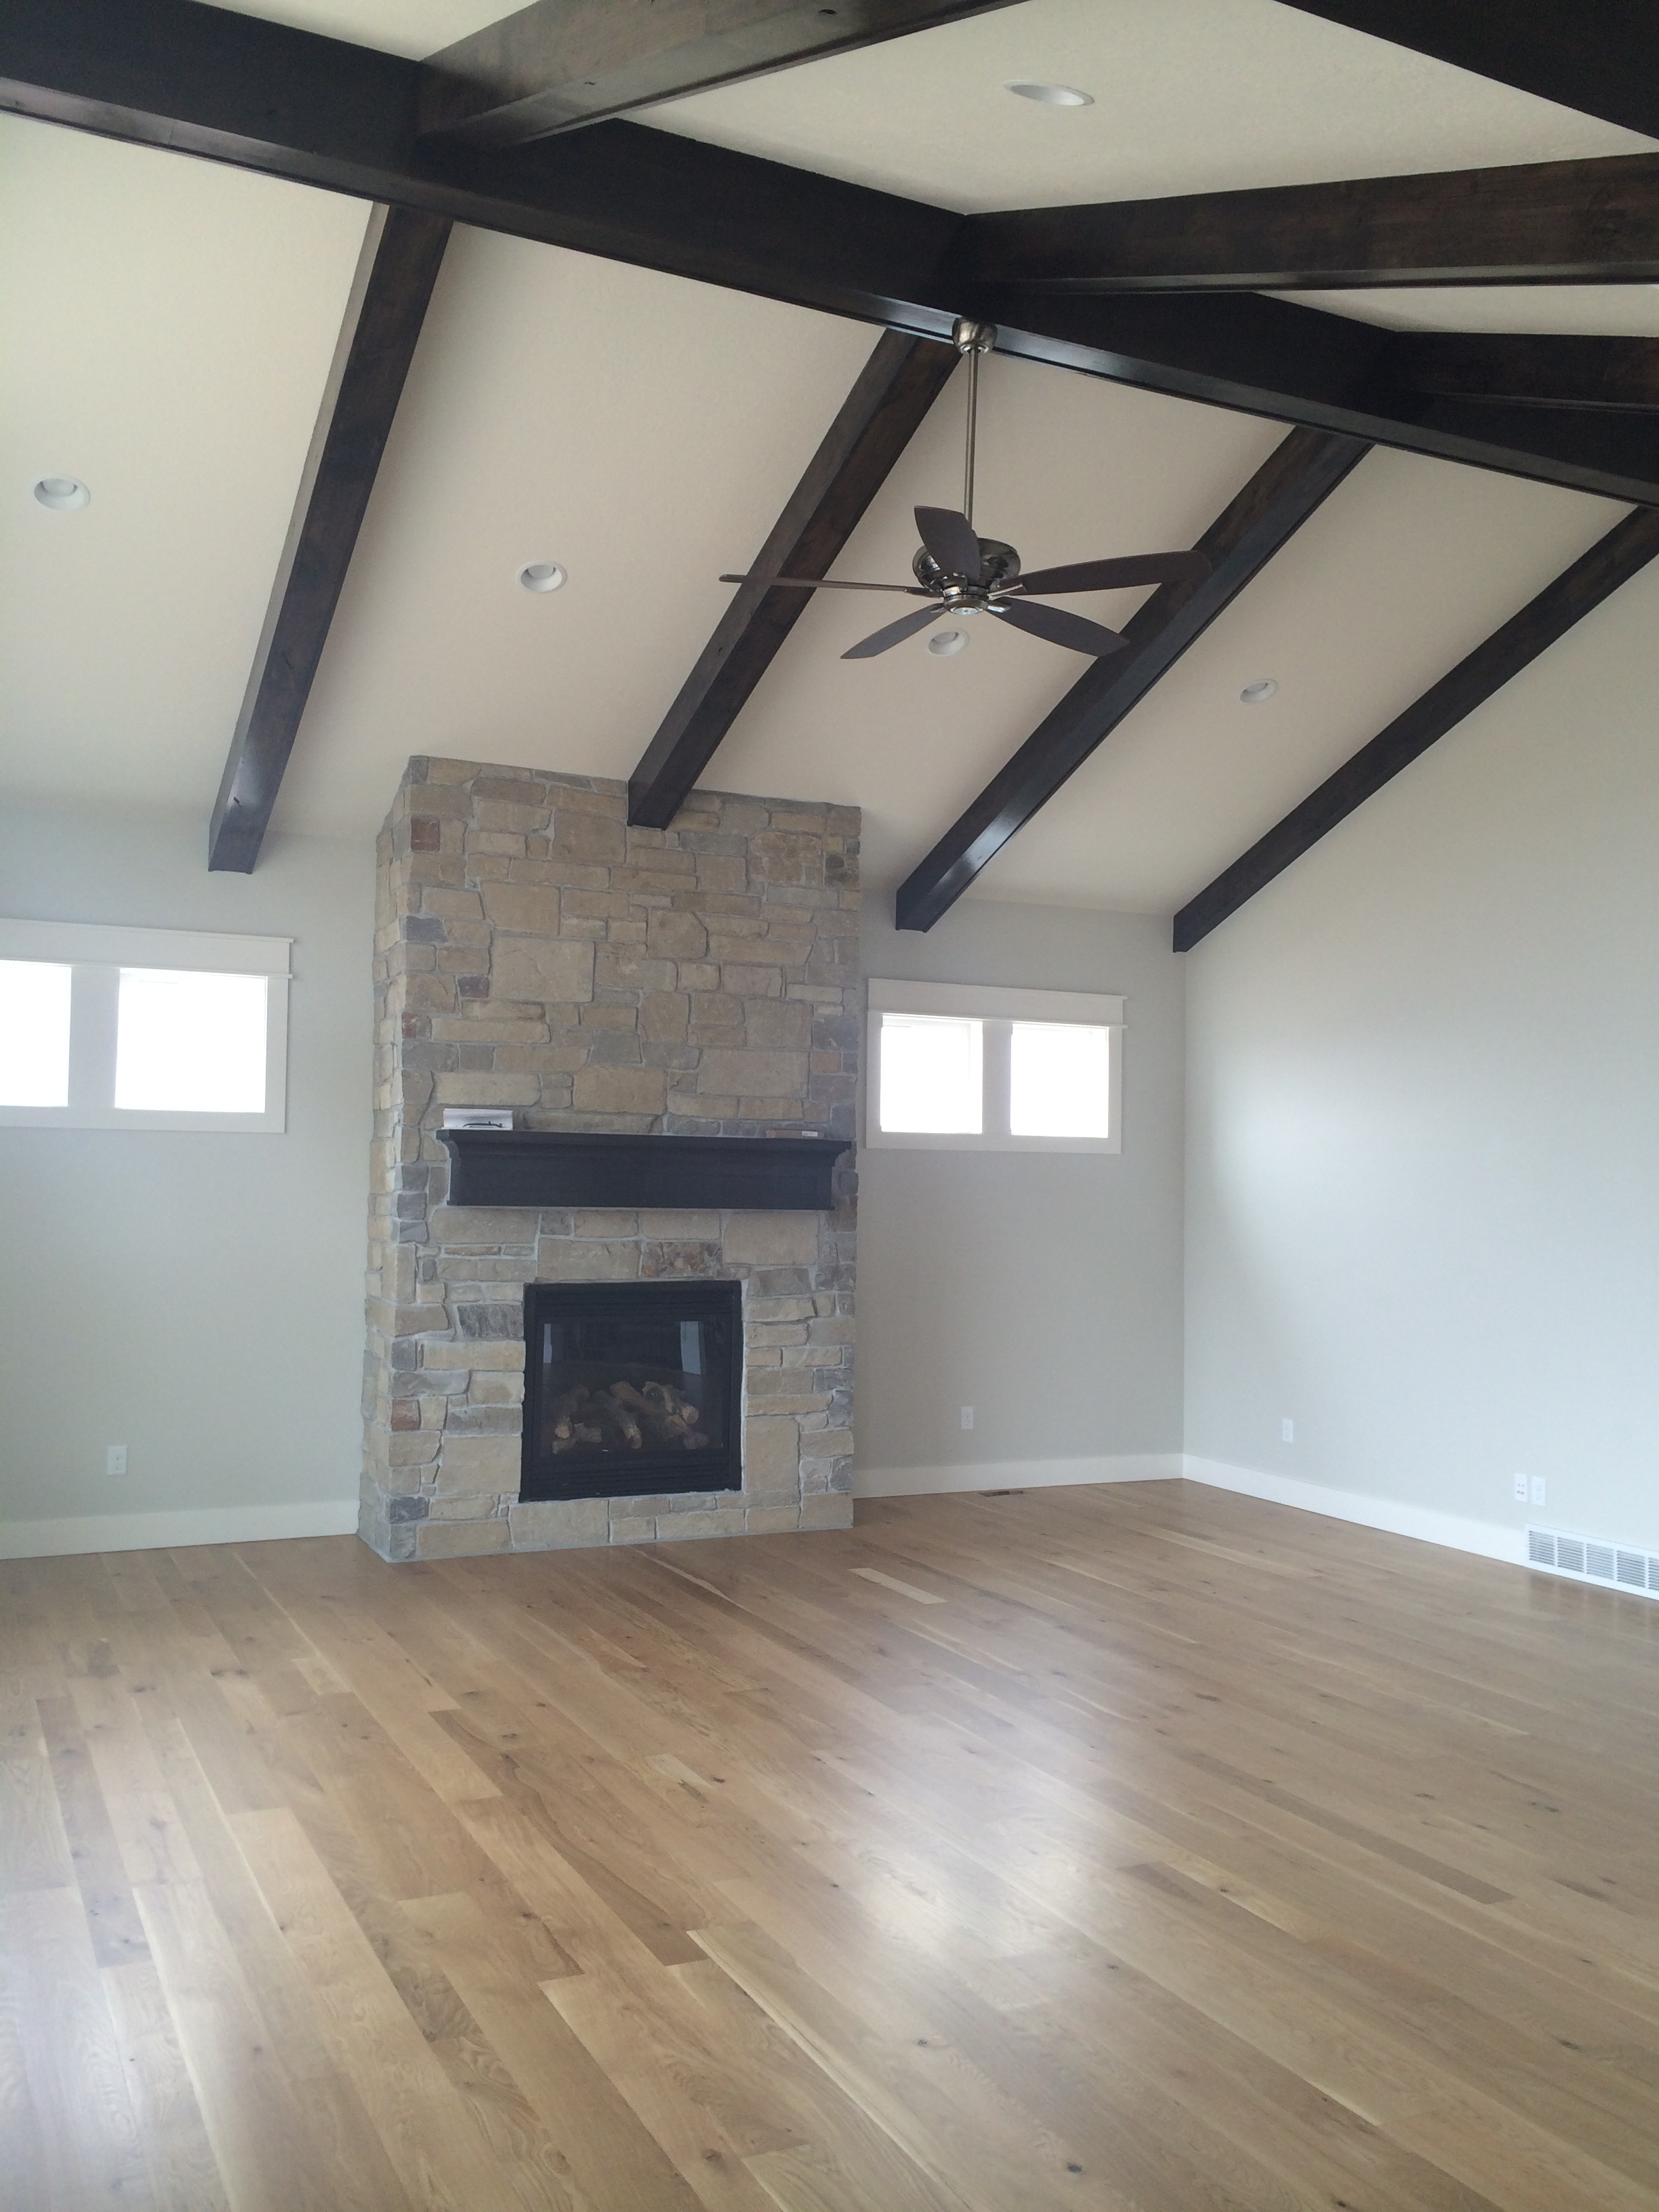 Faux beams highlight the vaulted ceiling. The beams and mantel were stained a charcoal color to pull out the dark knots and grain of the oak flooring. Notice the simple yet distinguished profile of the beams and the mantel.